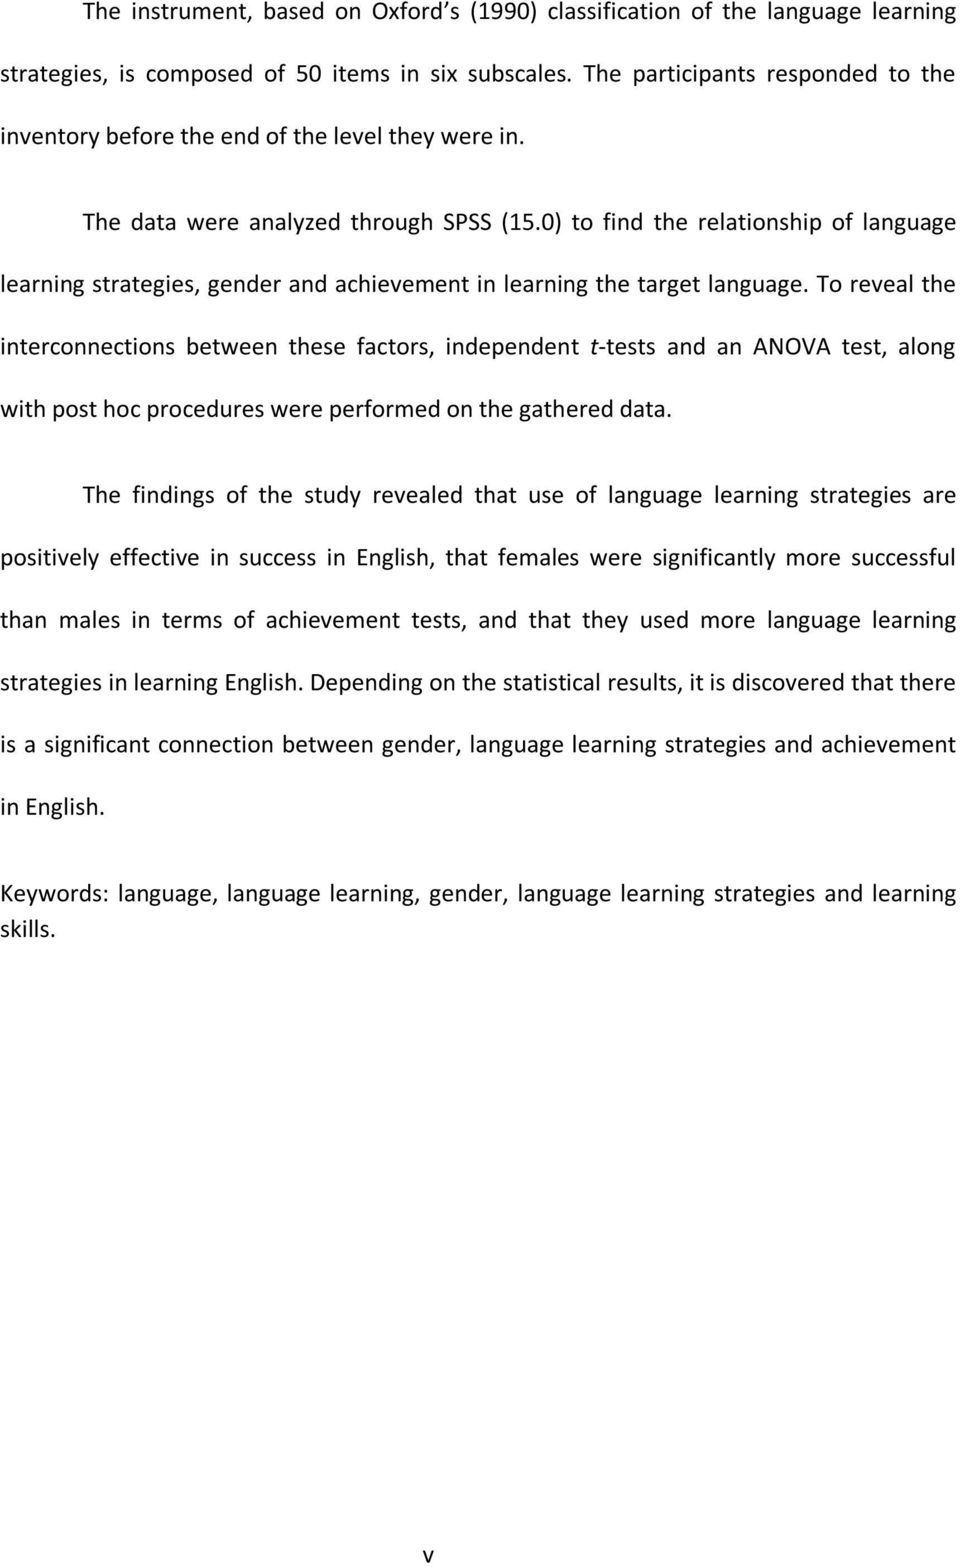 0) to find the relationship of language learning strategies, gender and achievement in learning the target language.